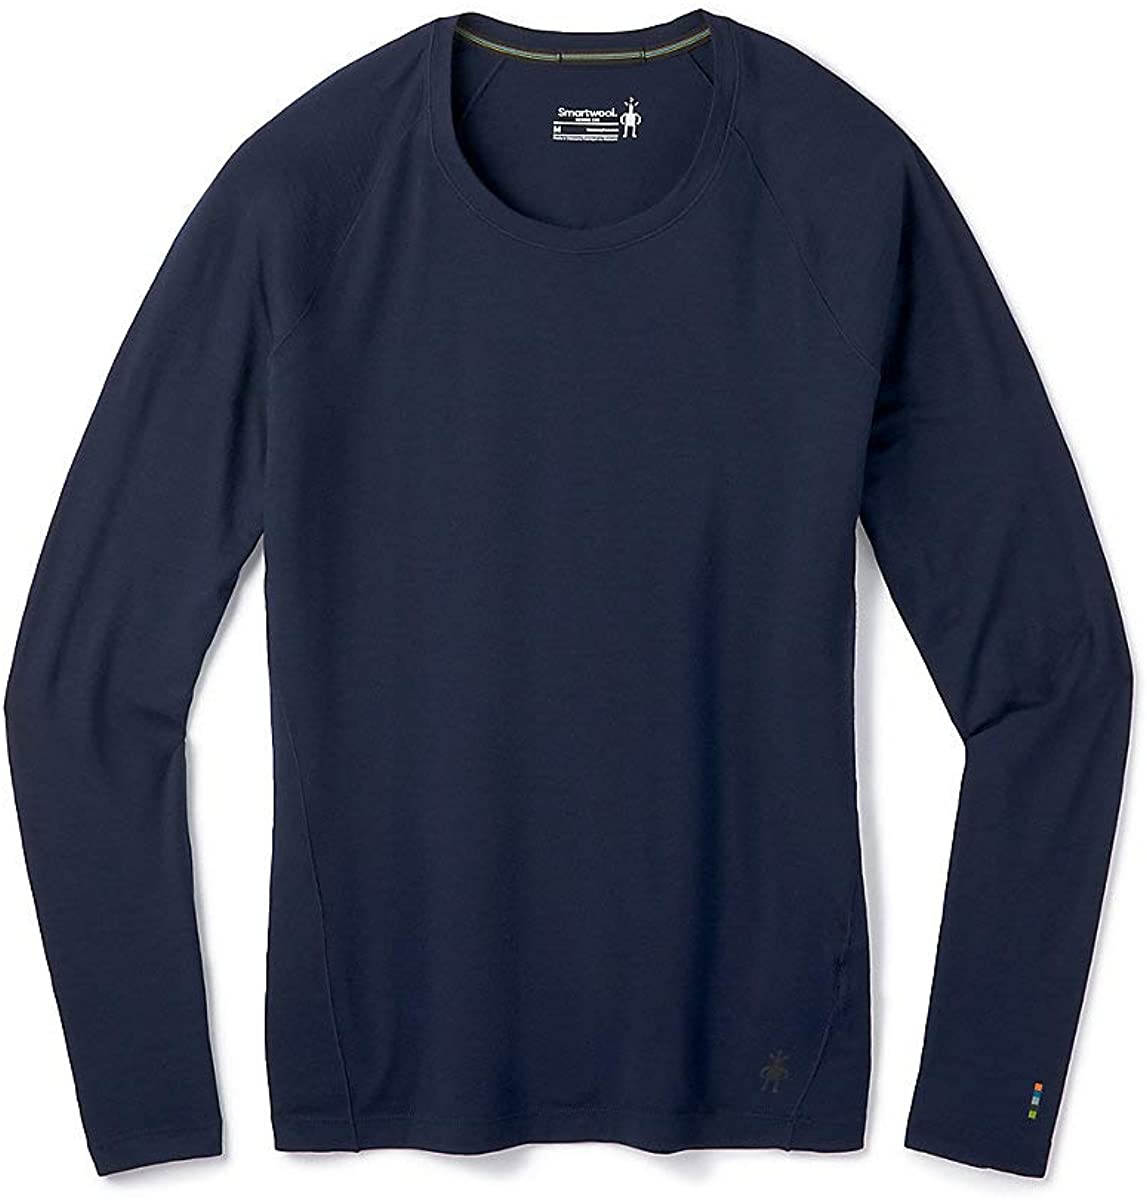 Women's Smartwool Merino 150 Base Layer Long Sleeve in Deep Navy from the side view